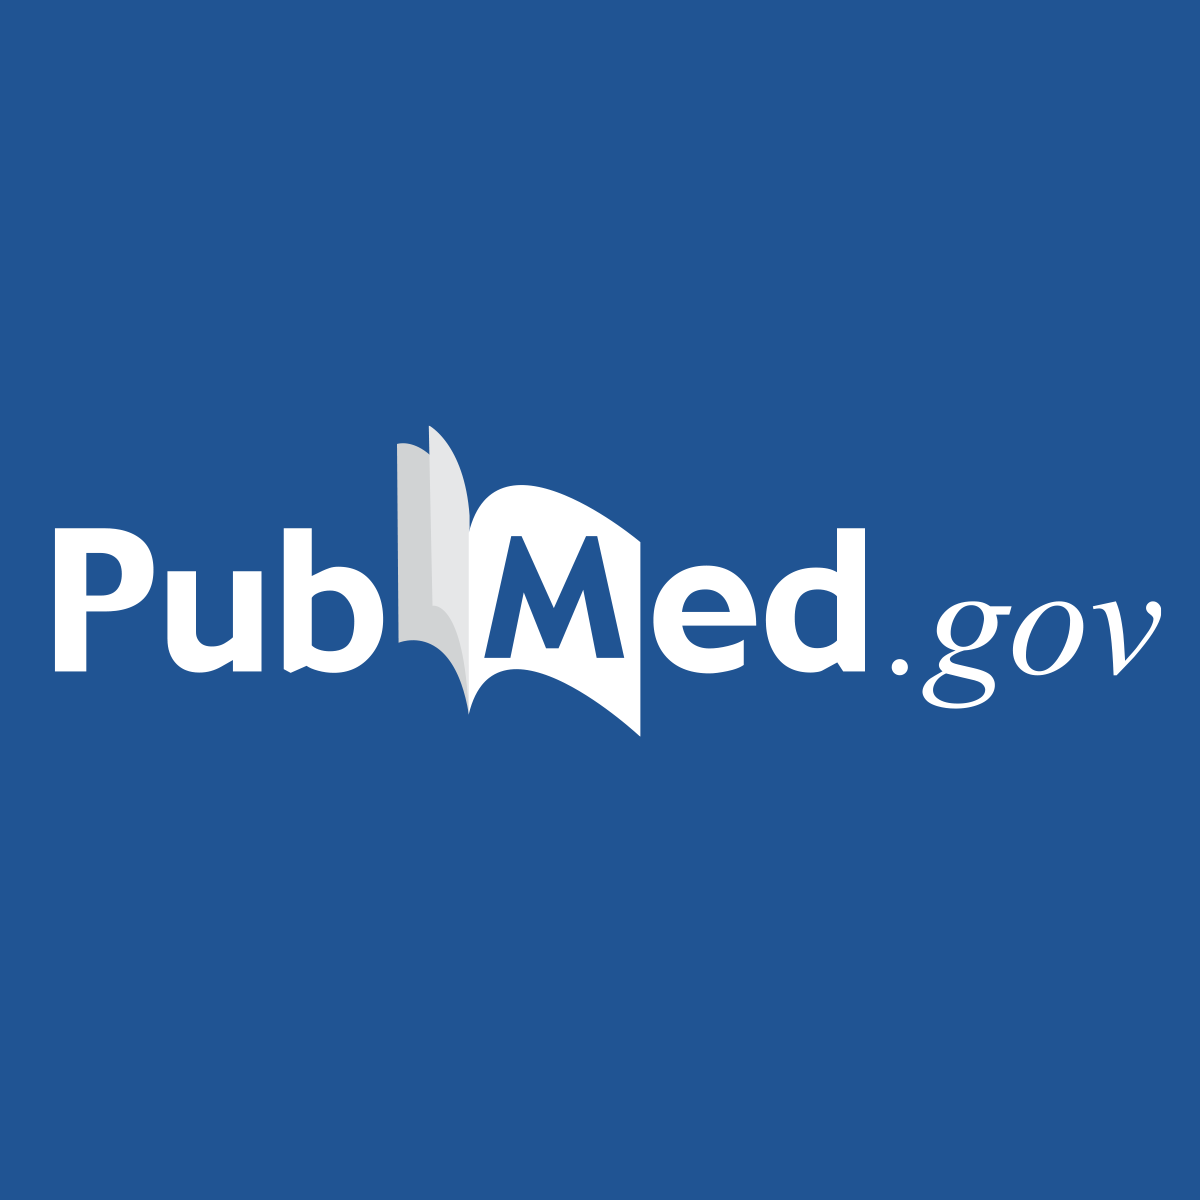 [Novel migraine treatment with CGRP-related monoclonal antibodies] - PubMed